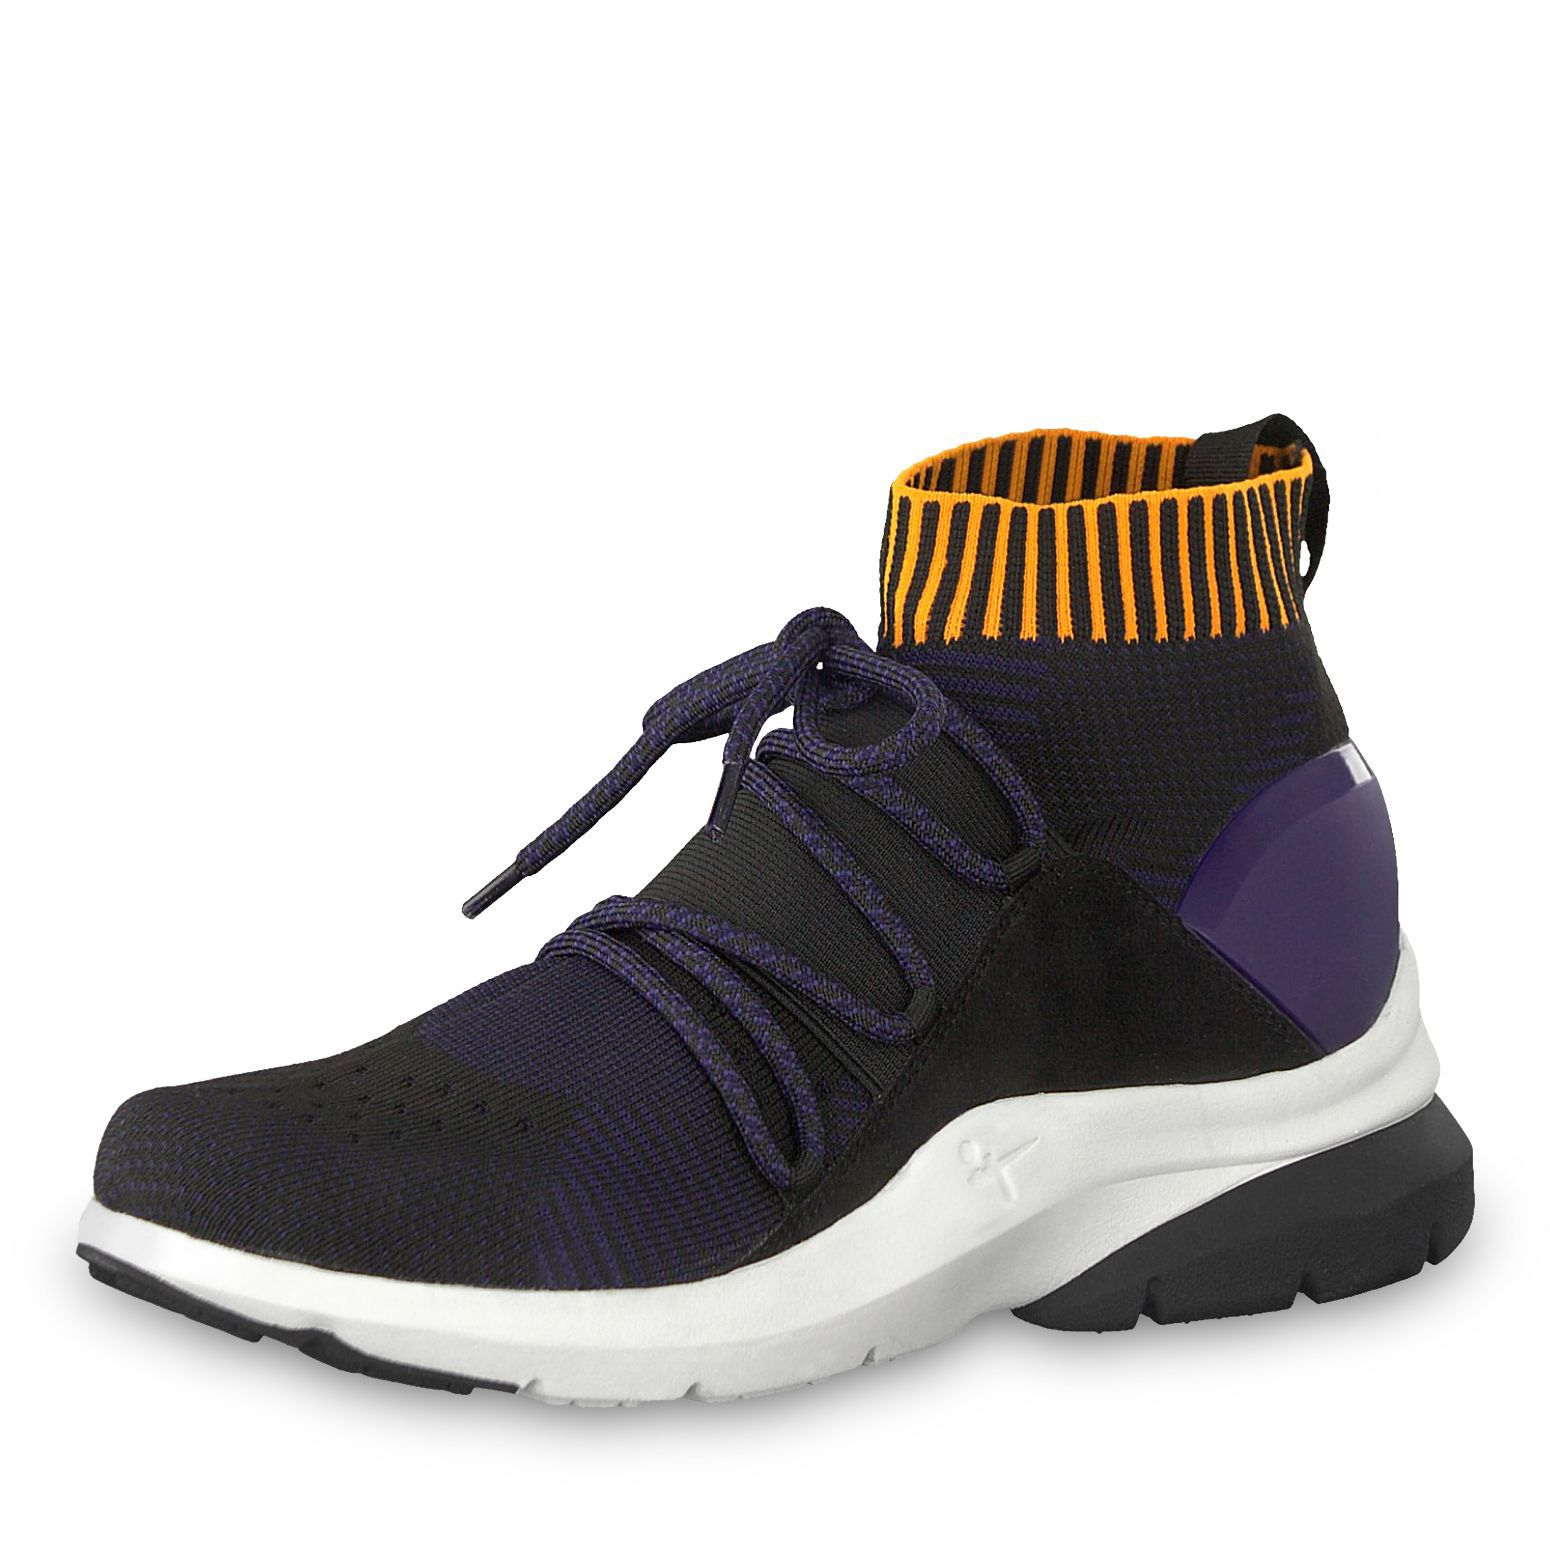 Aulankob, NAVY COMB, hi res | Adidas sneakers, Sneakers, Fashion